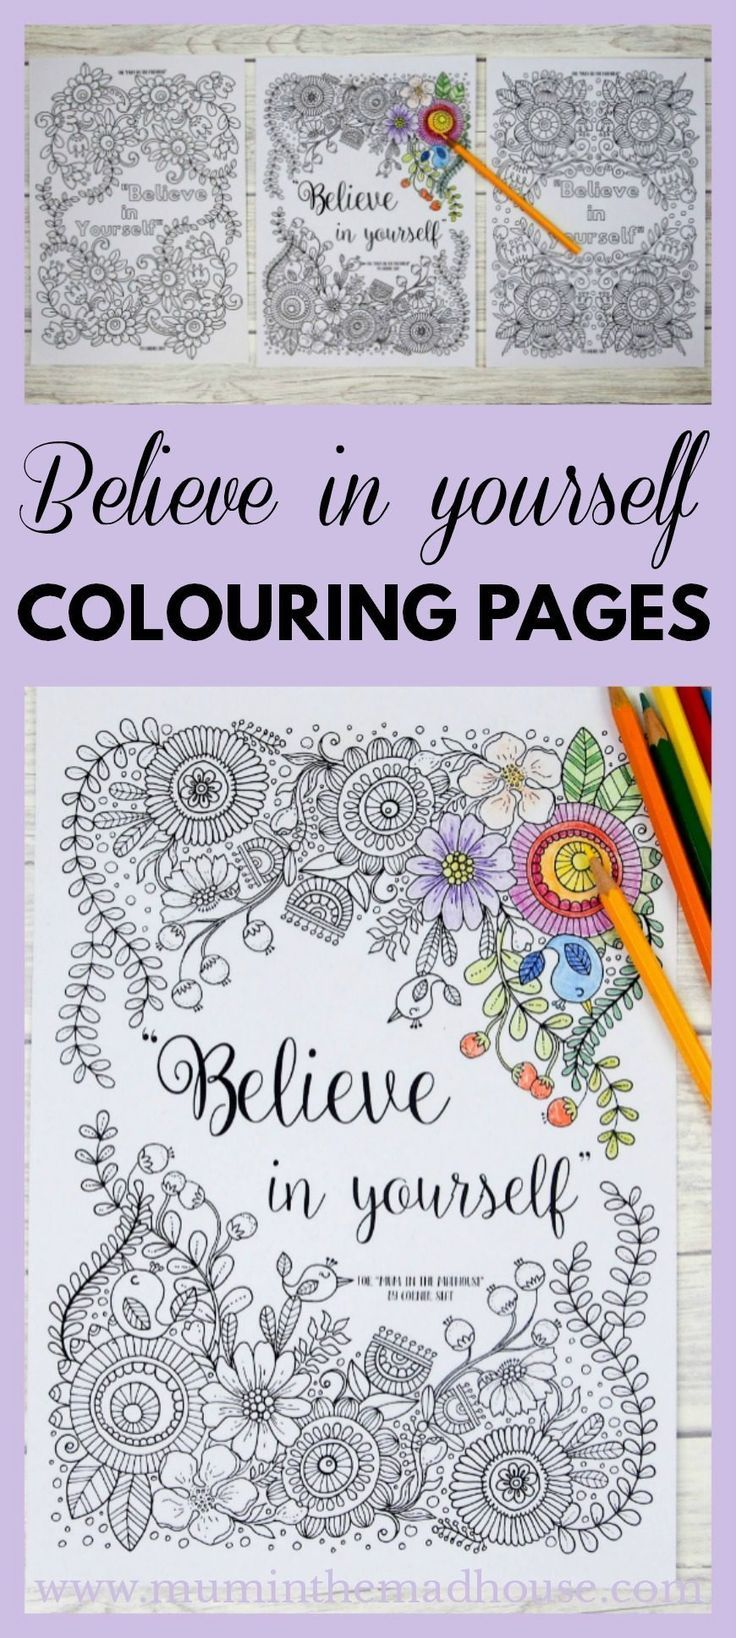 Believe in yourself adult colouring pages   Believe in yourself adult colouring pages - three beautiful believe in yourself colouring pages. Each one is more intricate than the previous and is a wonderful inspirational colouring page perfect for adults and tweens.